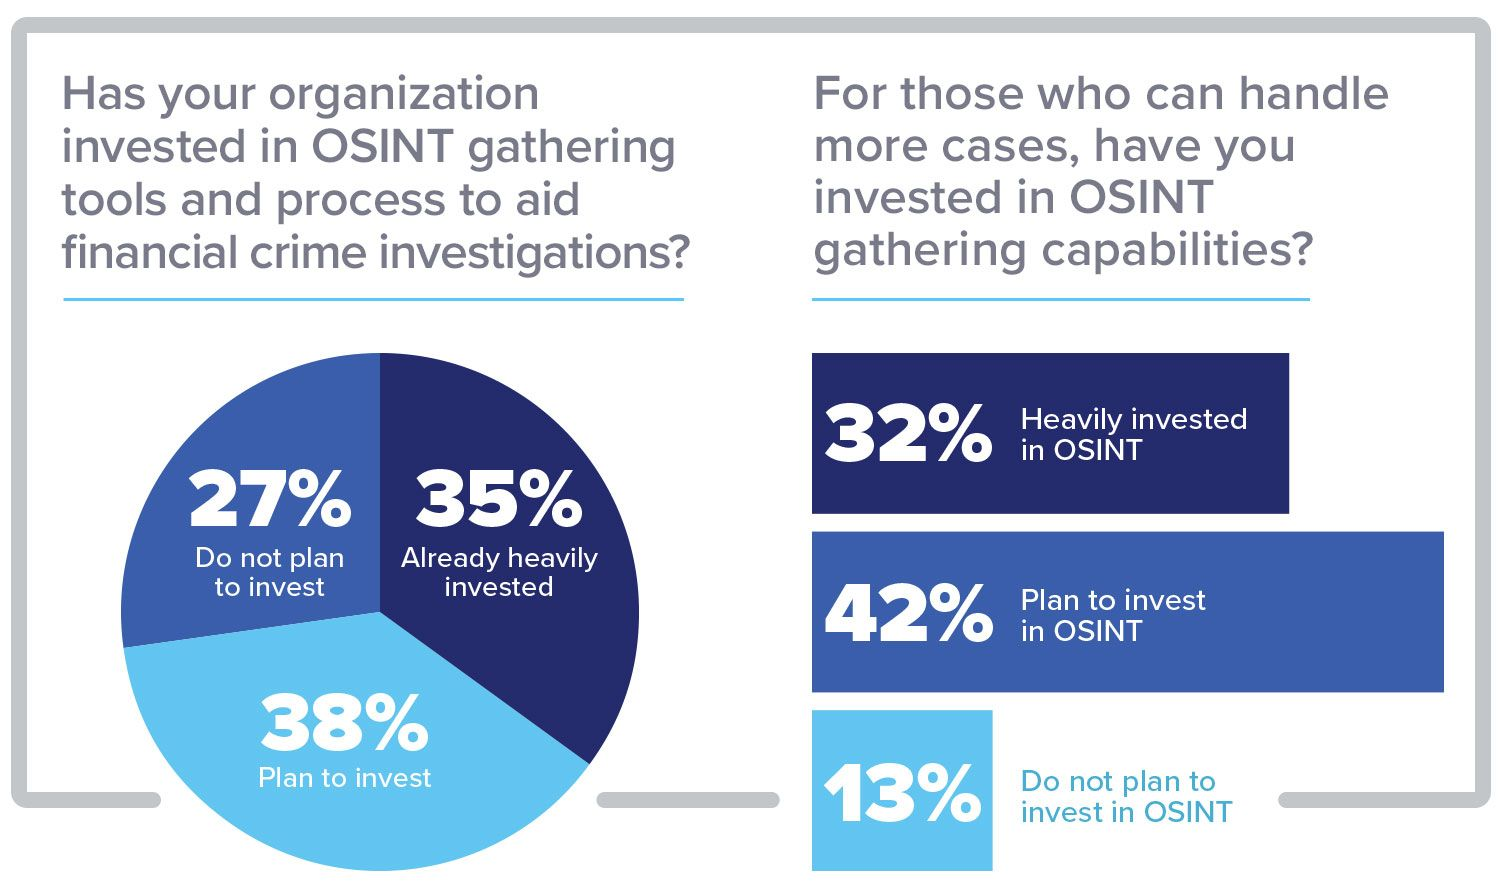 OSINT Gathering Key to Keeping Up With Financial Crime